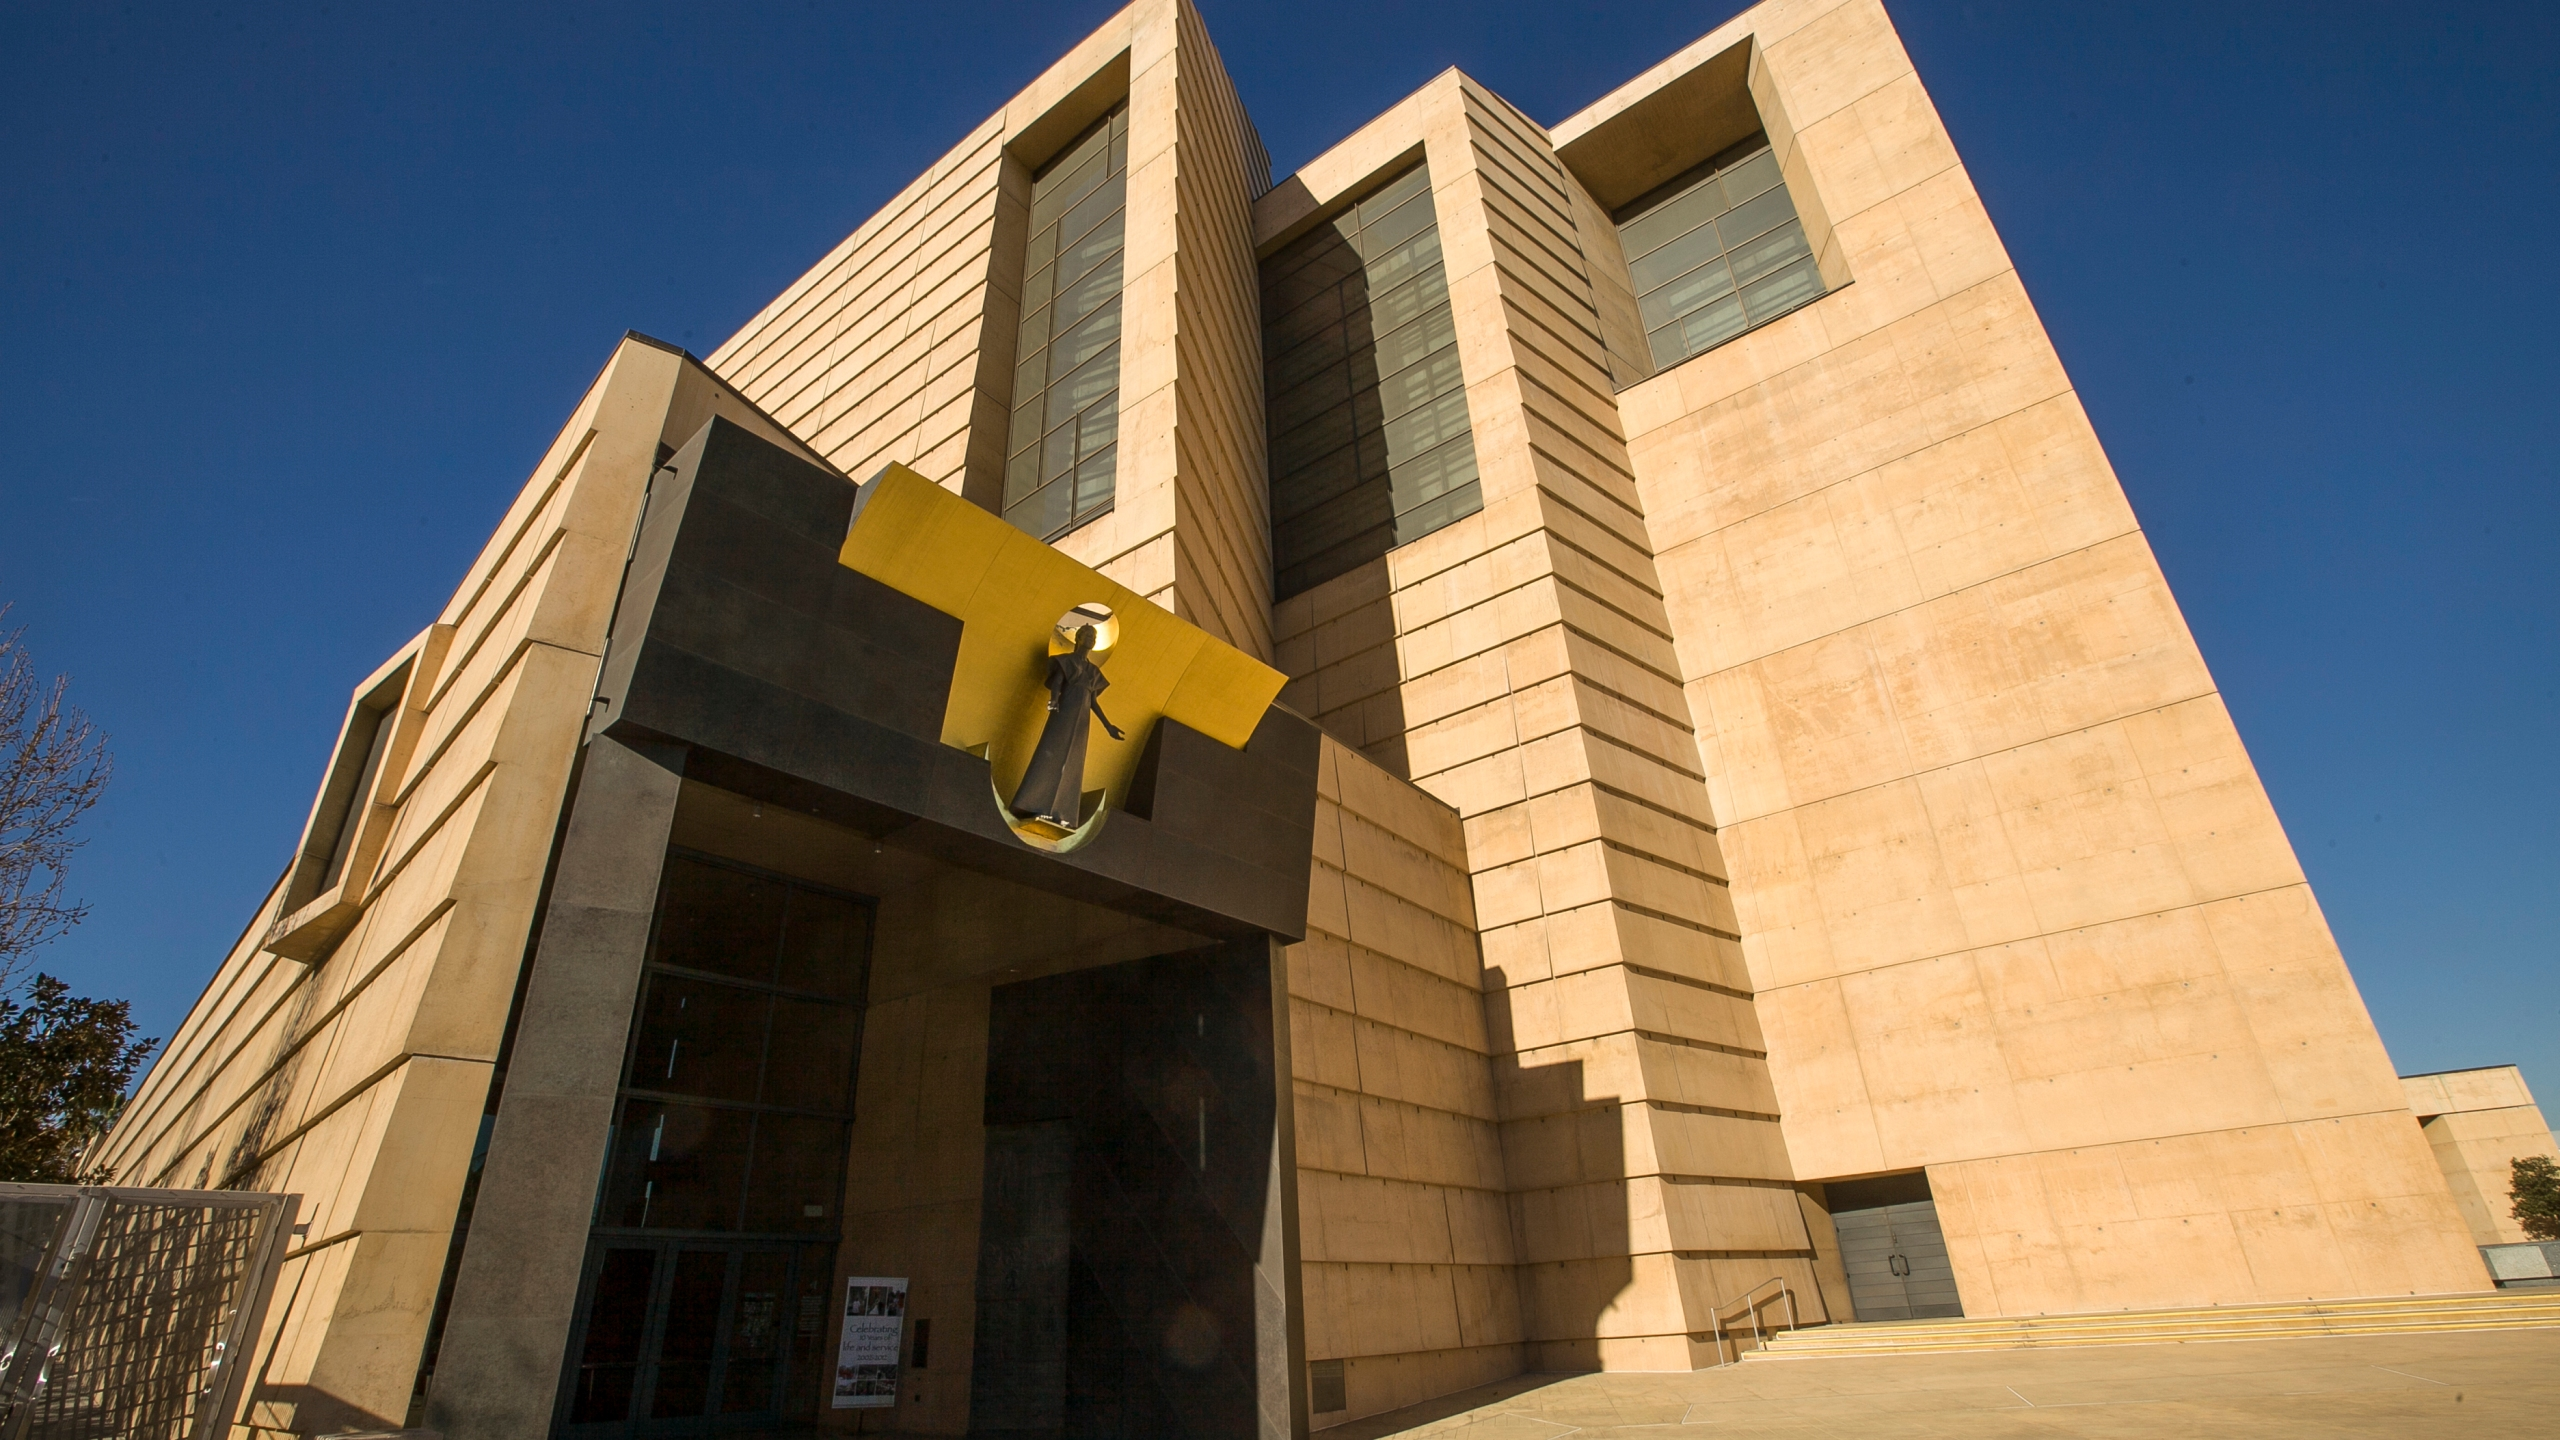 The entrance to the Cathedral of Our Lady of the Angels, the headquarters for the Roman Catholic Archdiocese of Los Angeles, is seen in a file photo from Jan. 21, 2013. (Damian Dovarganes / Associated Press)